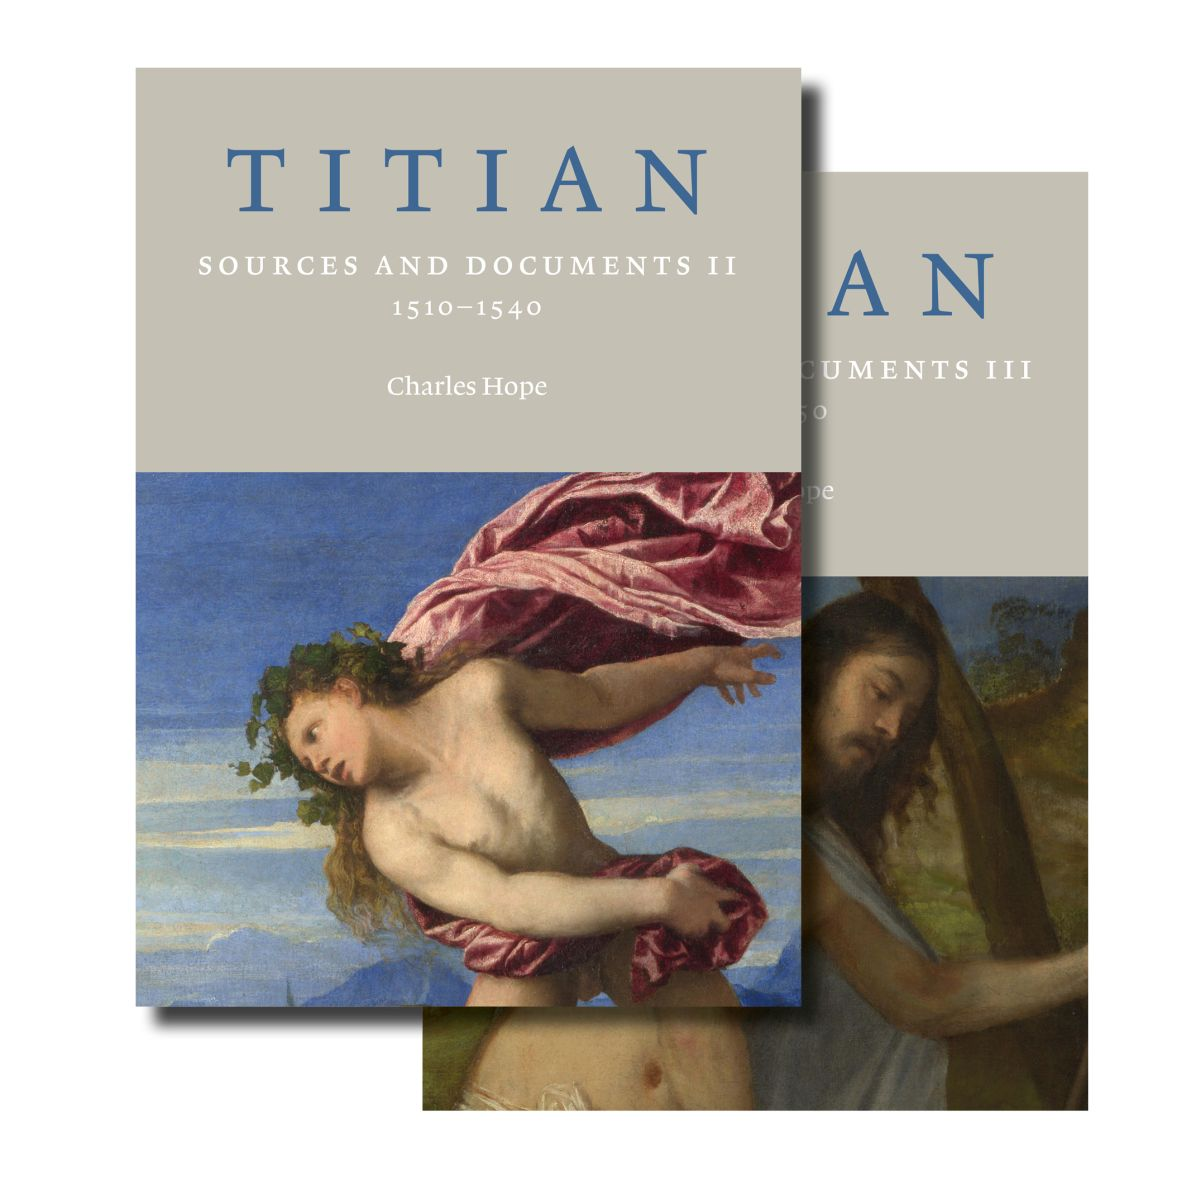 Titian: Sources and Documents